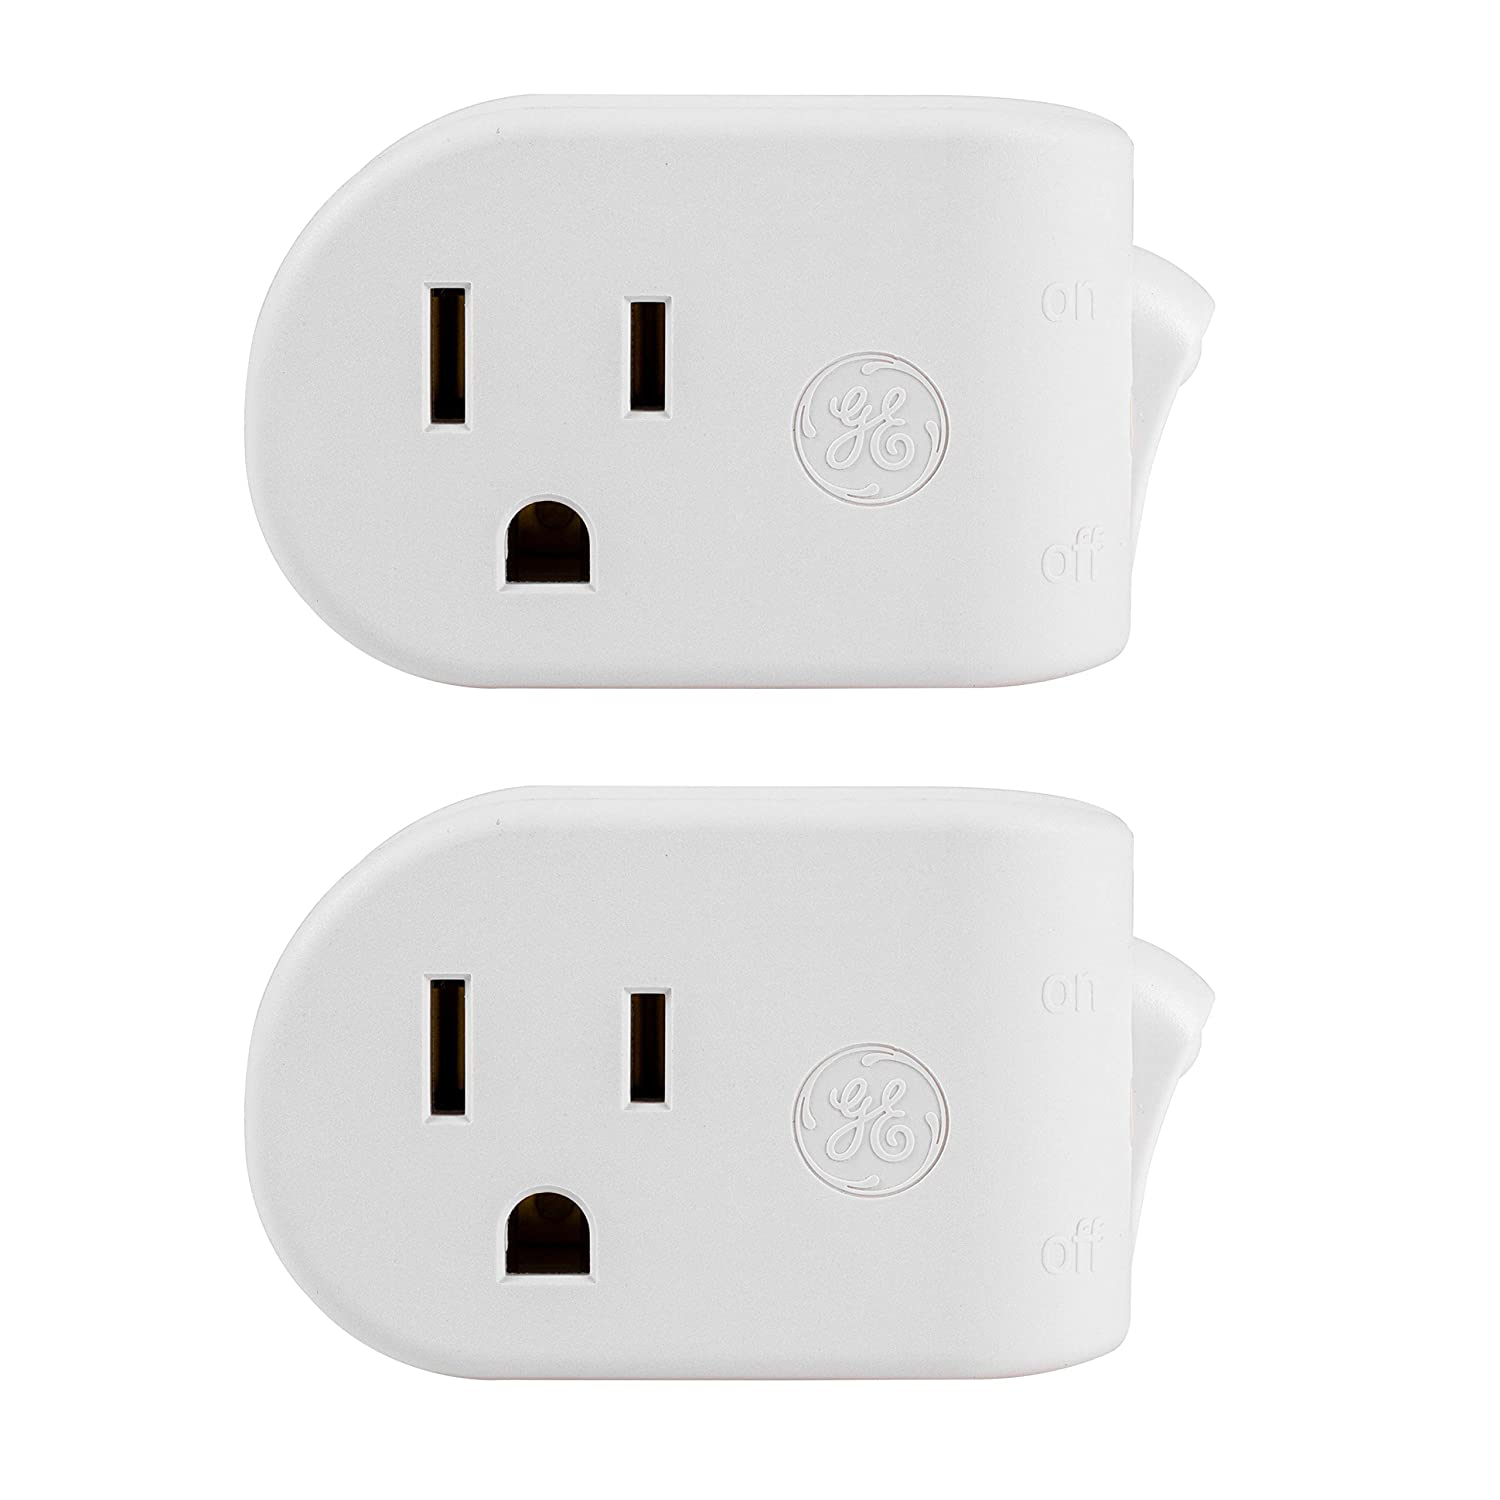 2-Pack : GE Grounded On/Off Power Switch, Plug-In, White, Energy Efficient, Space Saving Design, UL Listed, 15A, 120VAC, 1800W, 39713